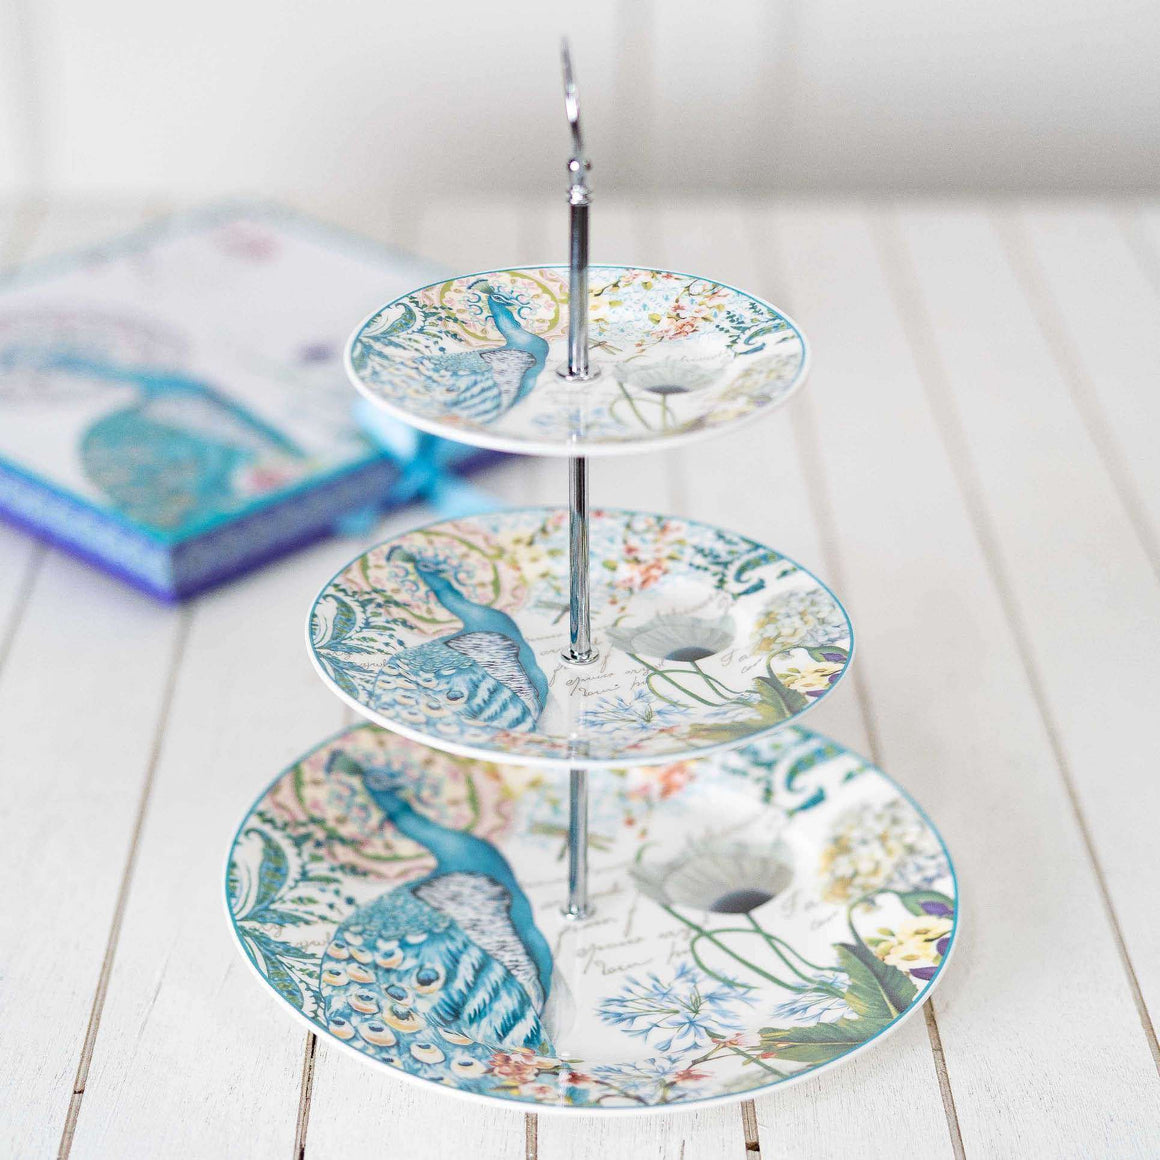 The Peacock 3-Tier Cake Stand